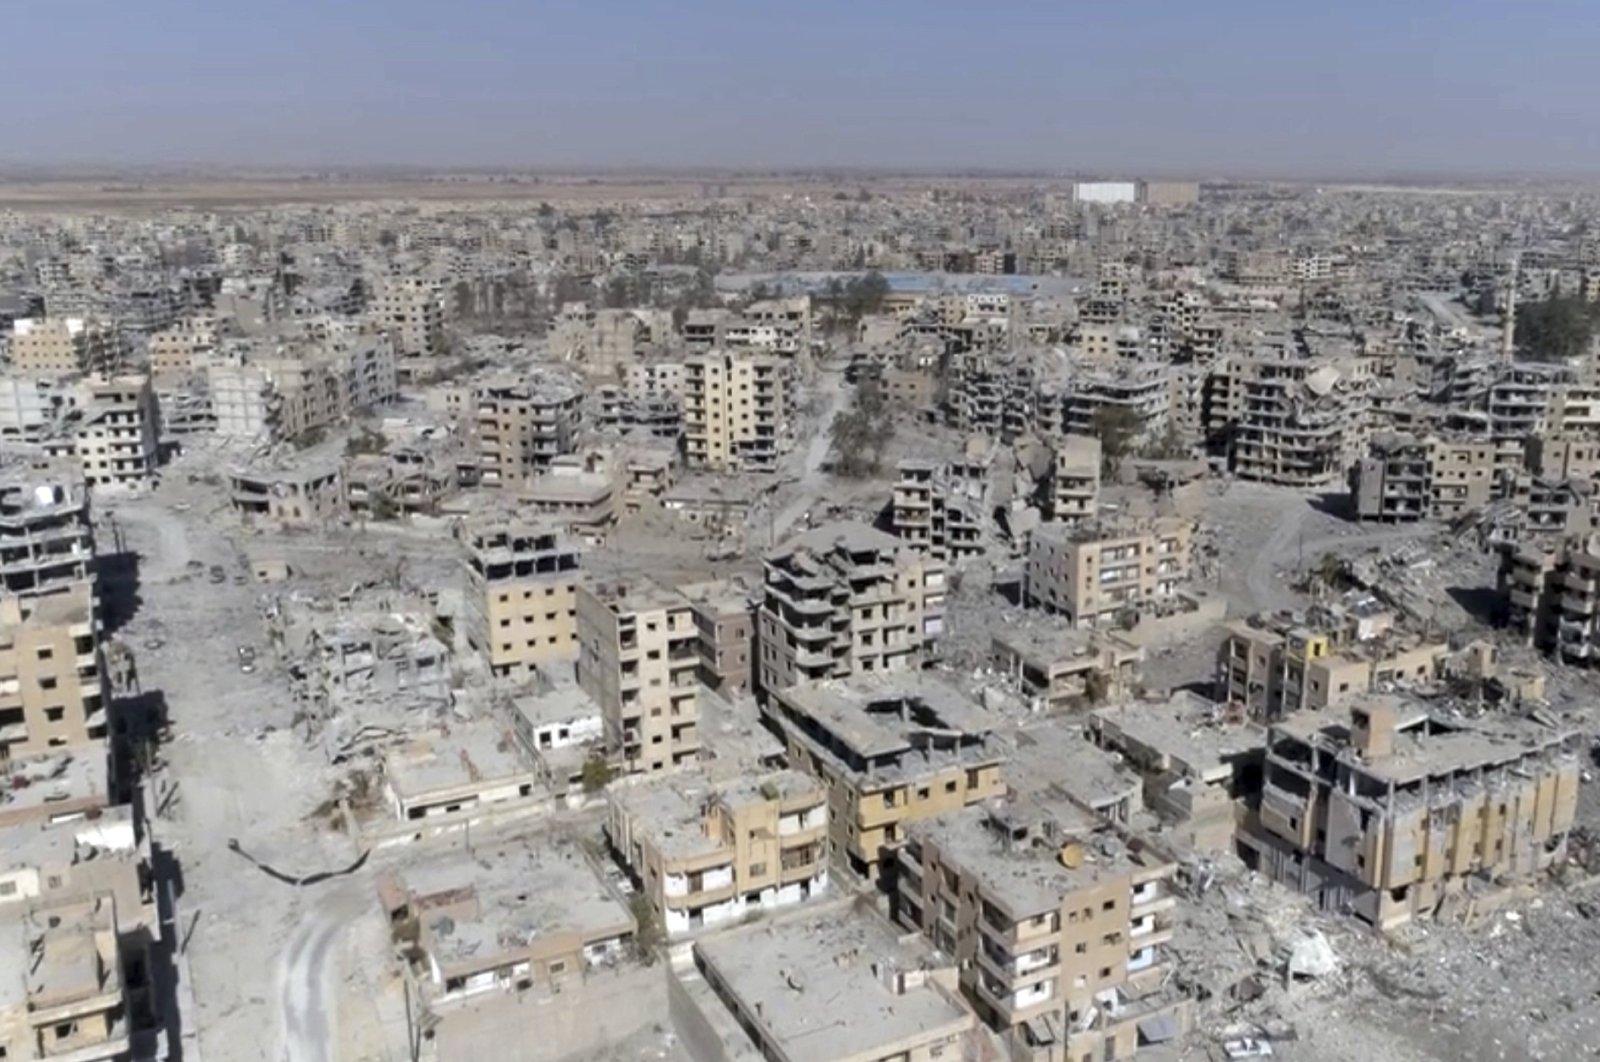 A screengrab from drone video shows damaged buildings in Raqqa, Syria, Oct. 19, 2017. (AP Photo)